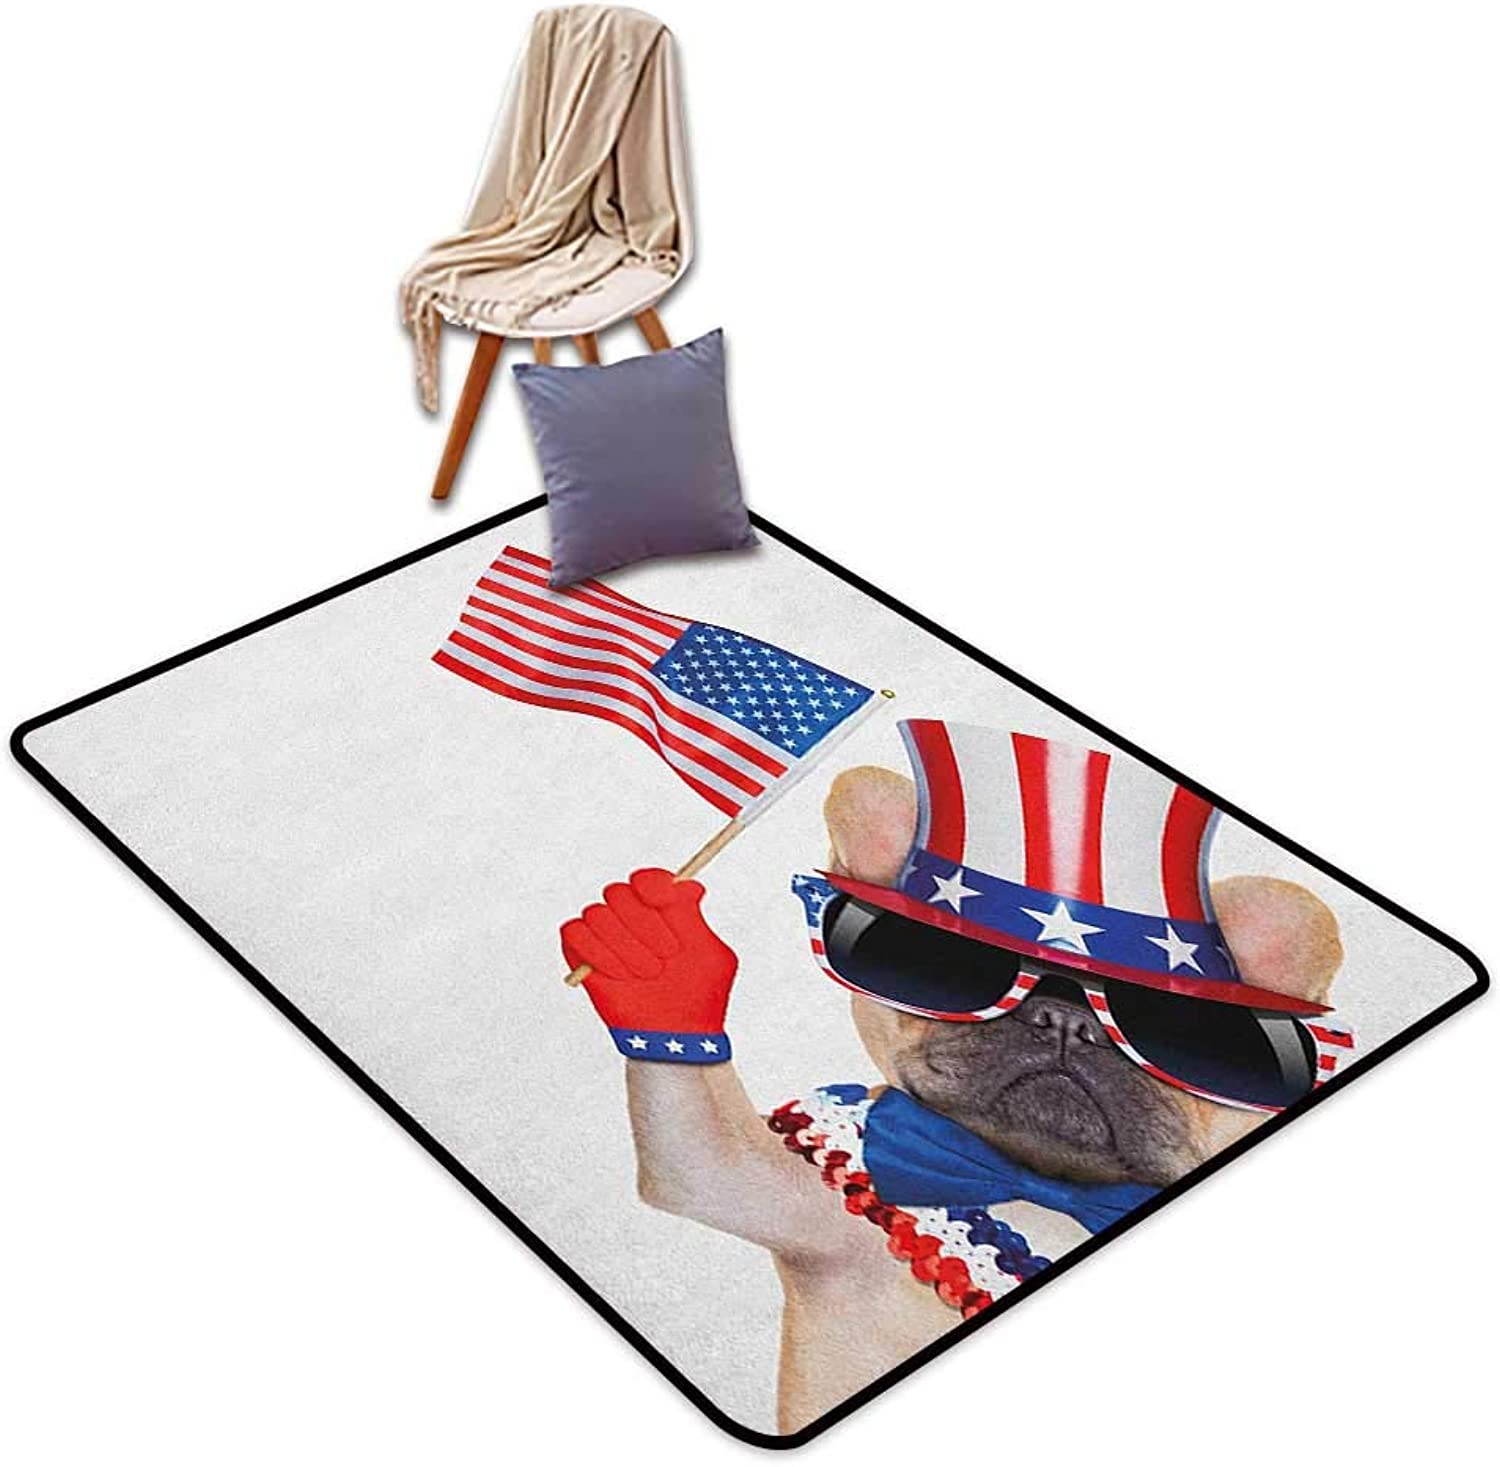 Inner Door Rug 4th of July Pug Dog Wearing Patriotic Accessories and Waving The Flag Celebration Image Outside The Door Rug W4'xL6'